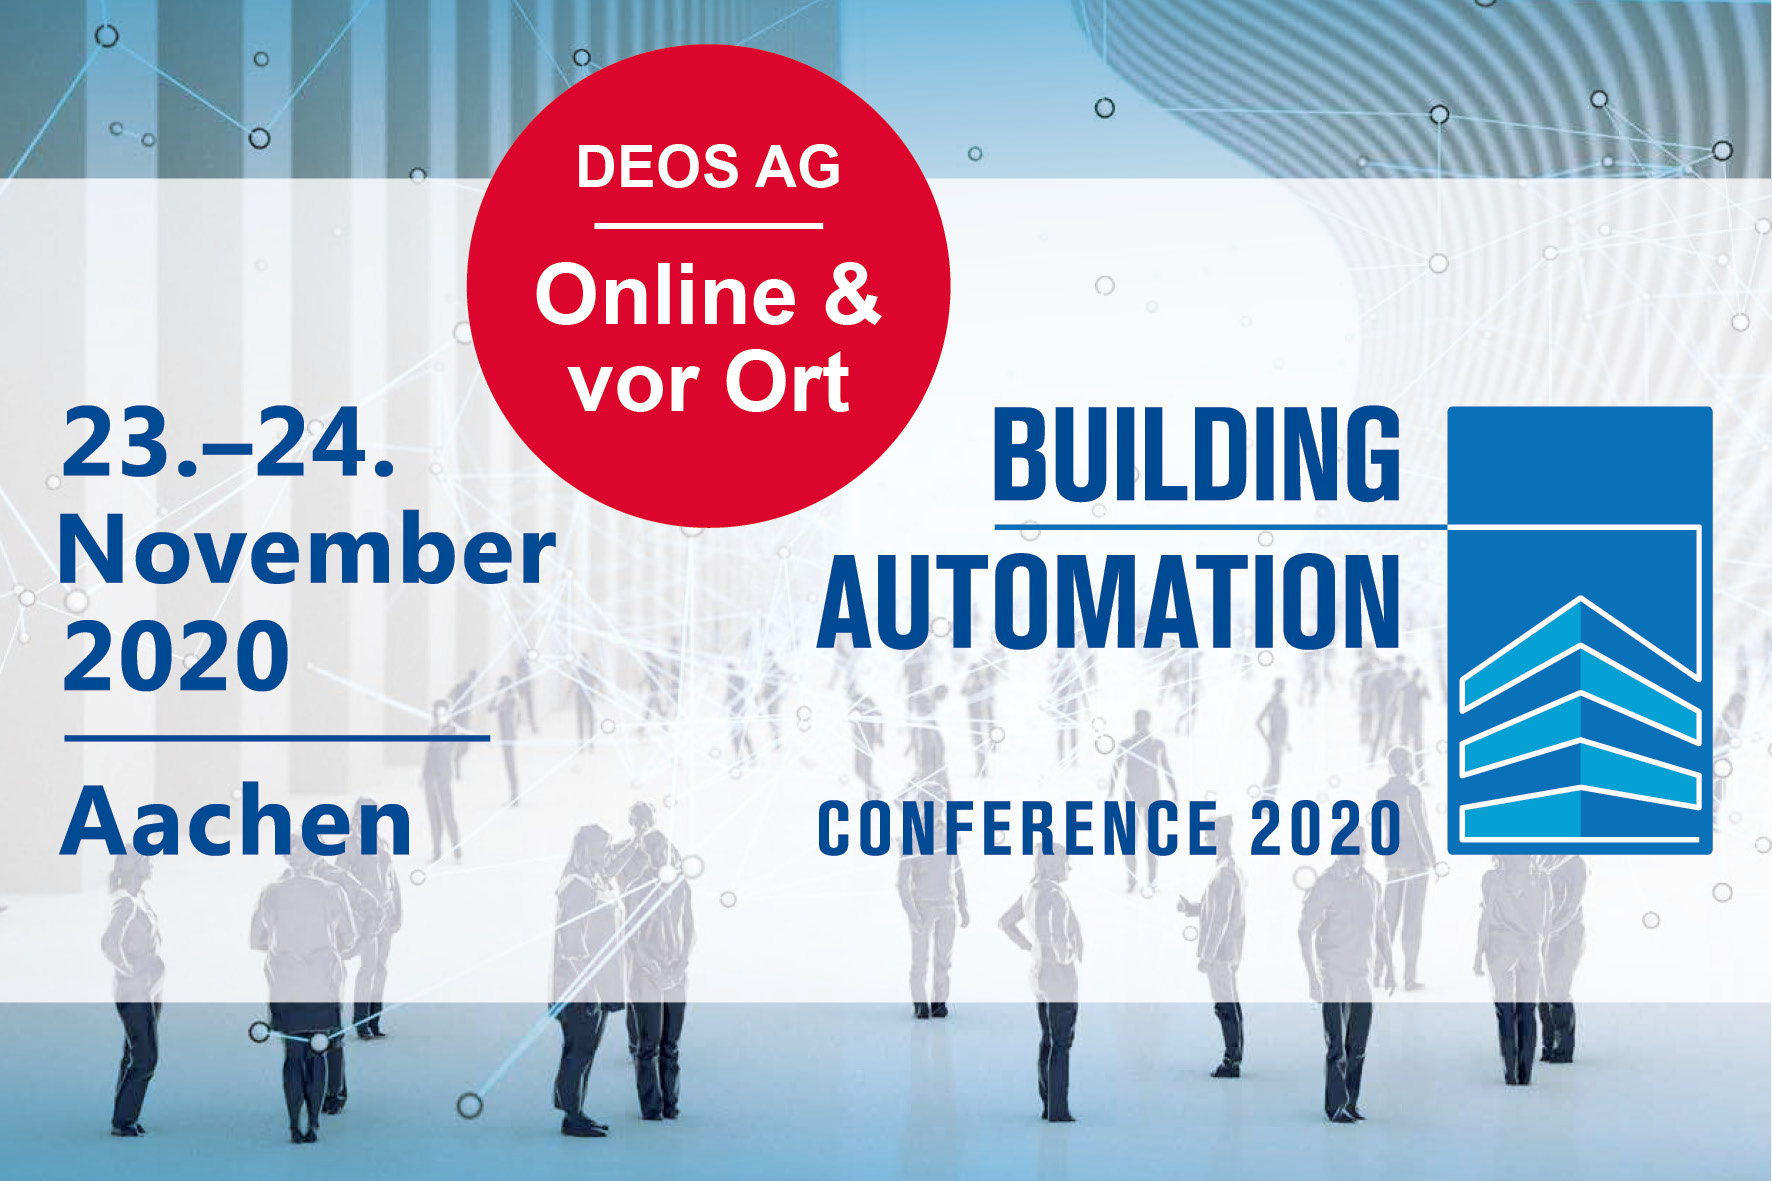 Building Automation Conference 2020 in Aachen